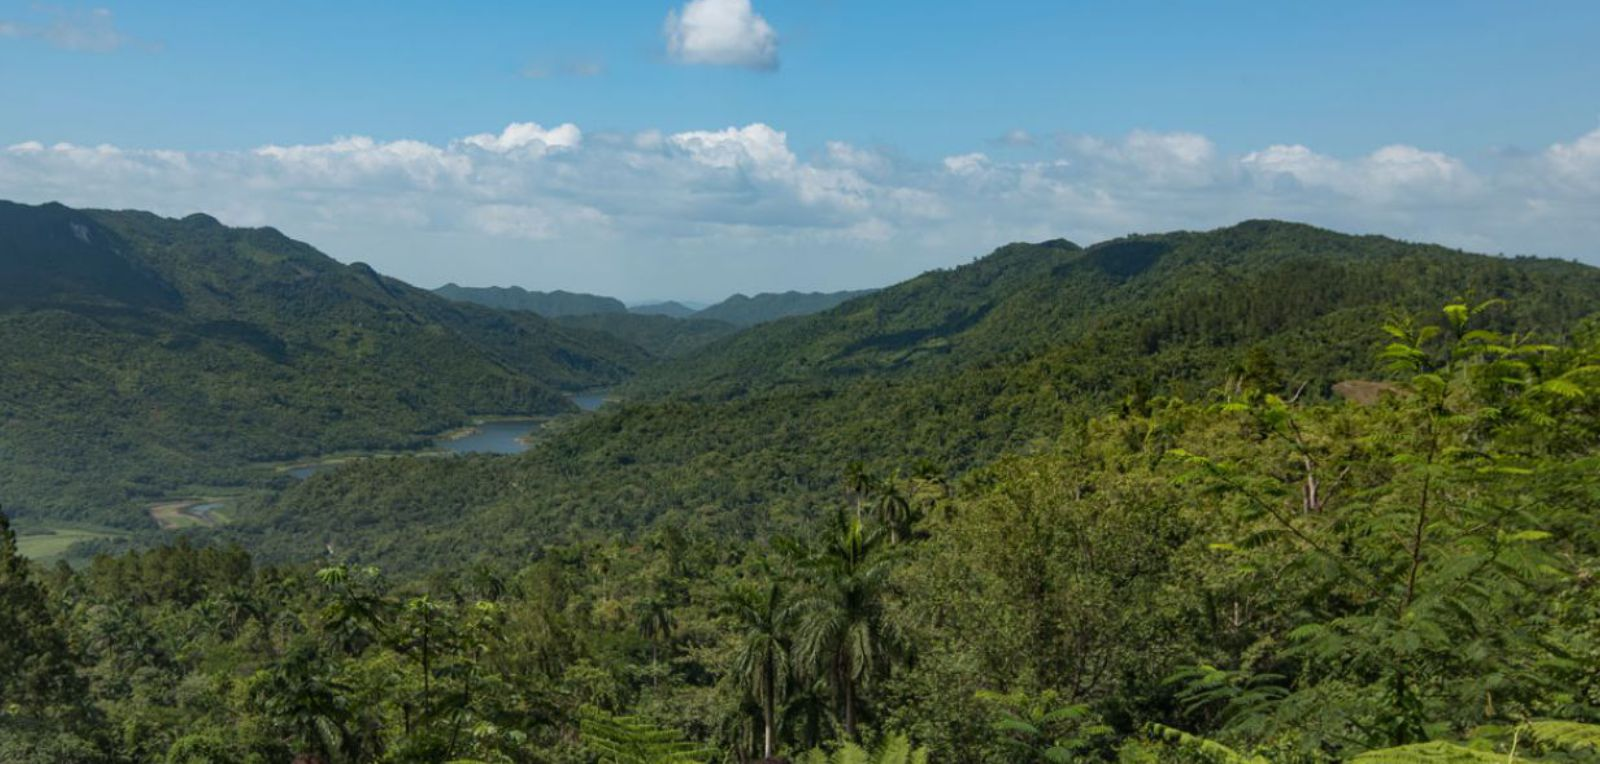 Cuba's nature reserve stands out for its biodiversity